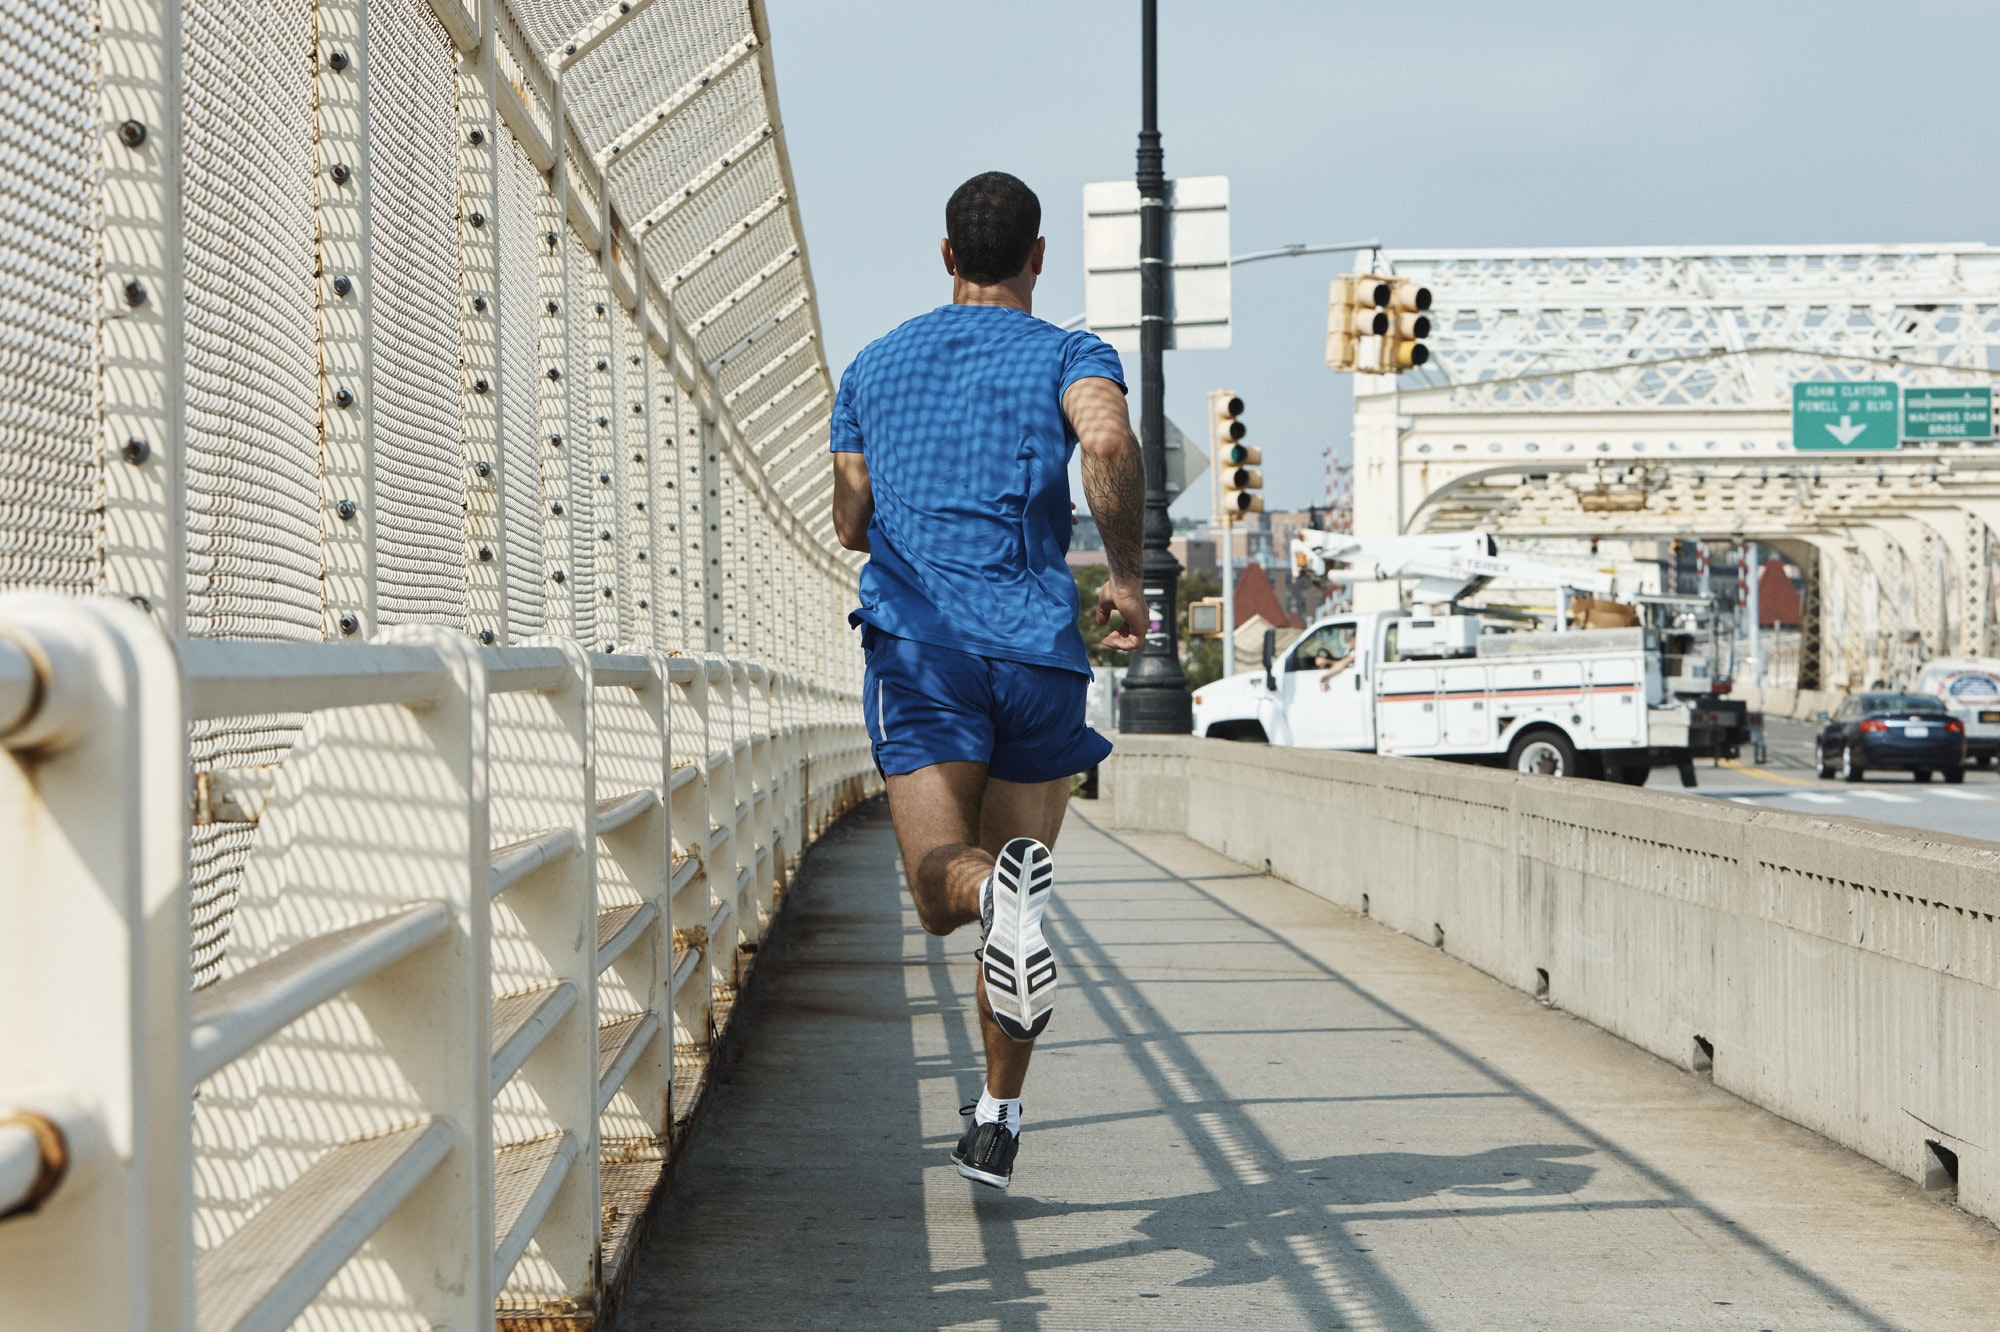 Editorial photo for Running Shorts category